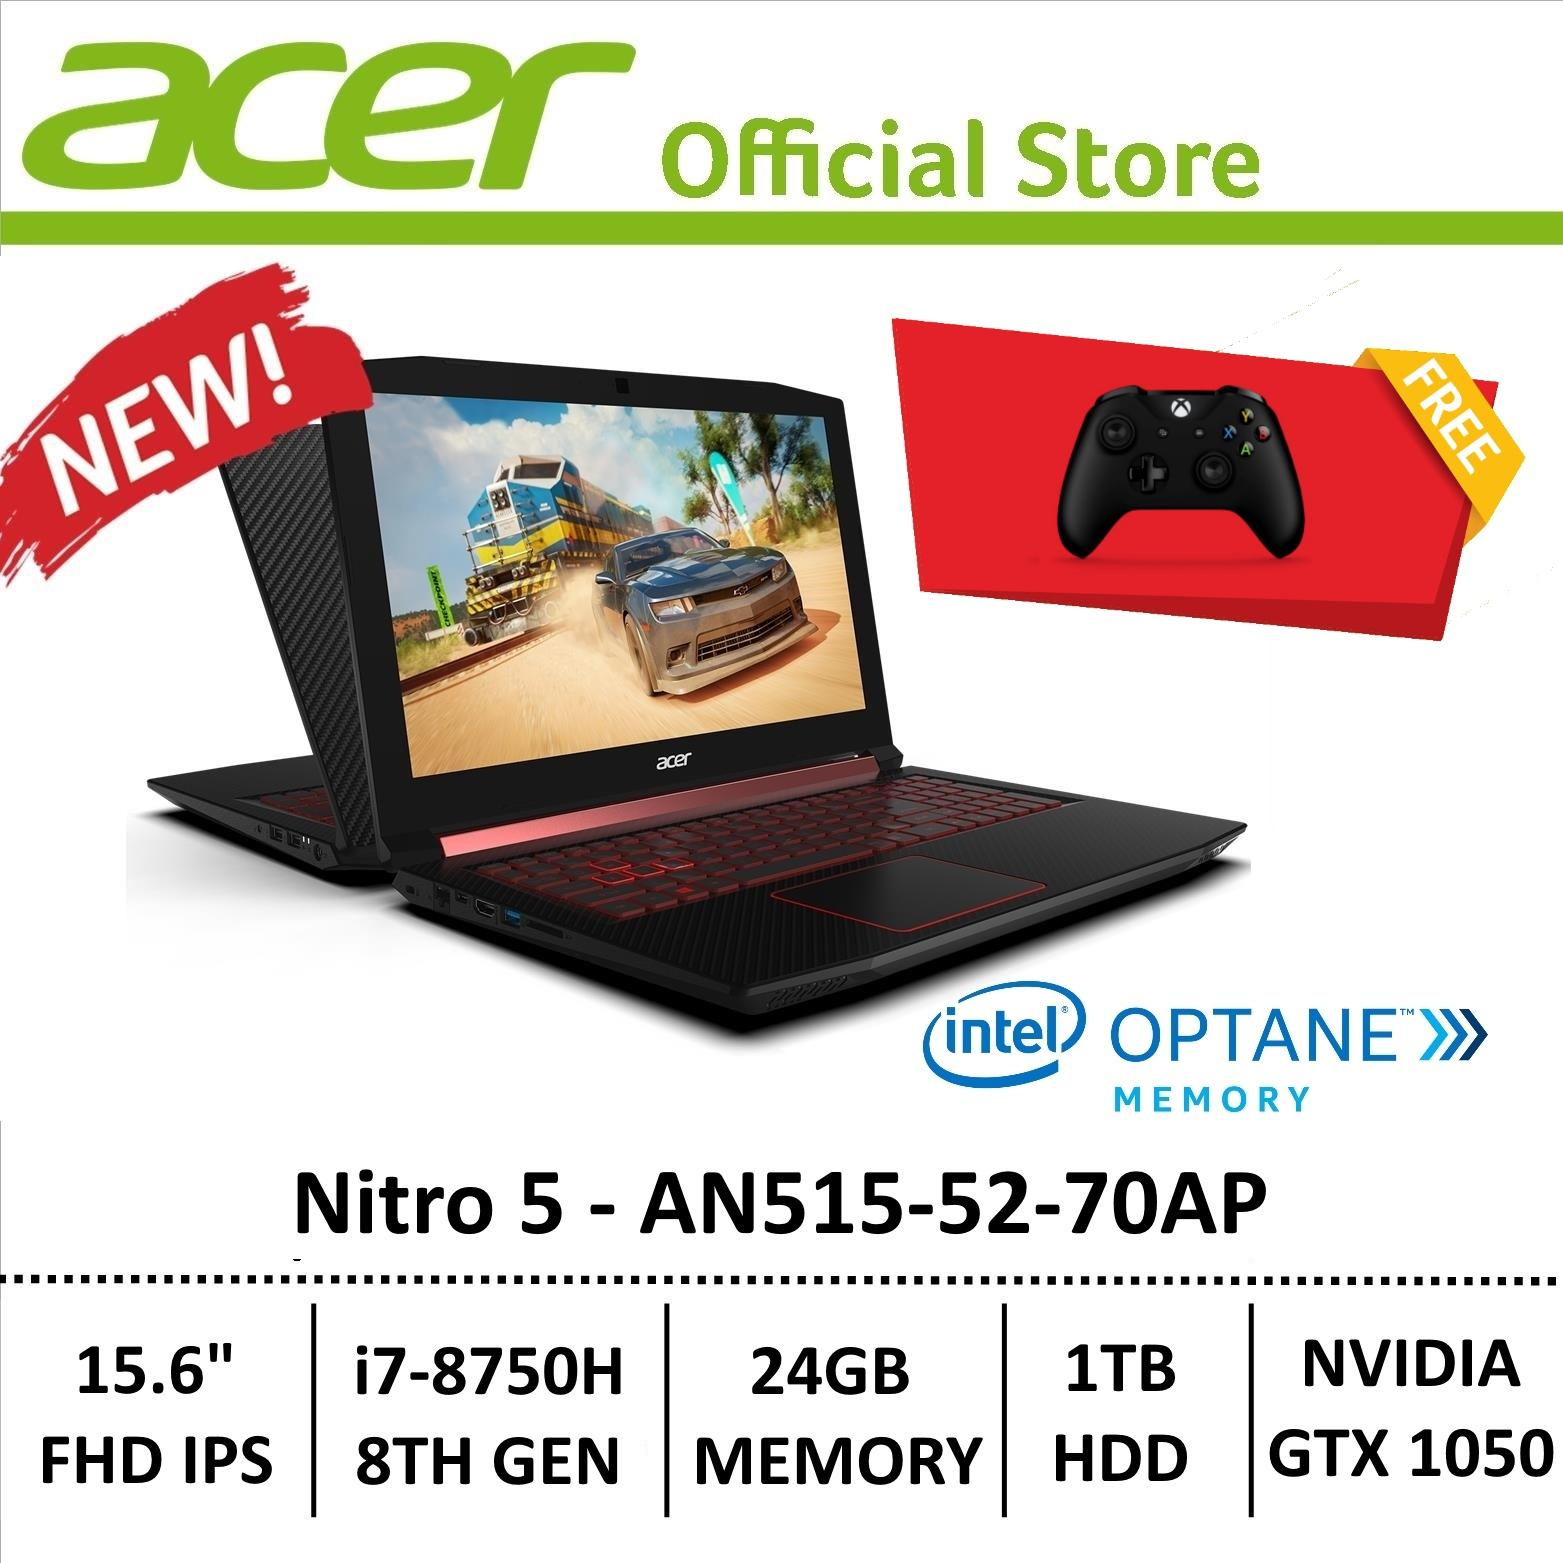 Acer Aspire Nitro 5 AN515-52-70AP Gaming Laptop – 8th Generation Core i7+ Processor with GTX 1050 Graphics (Optane Memory) + free xbox wireless controller